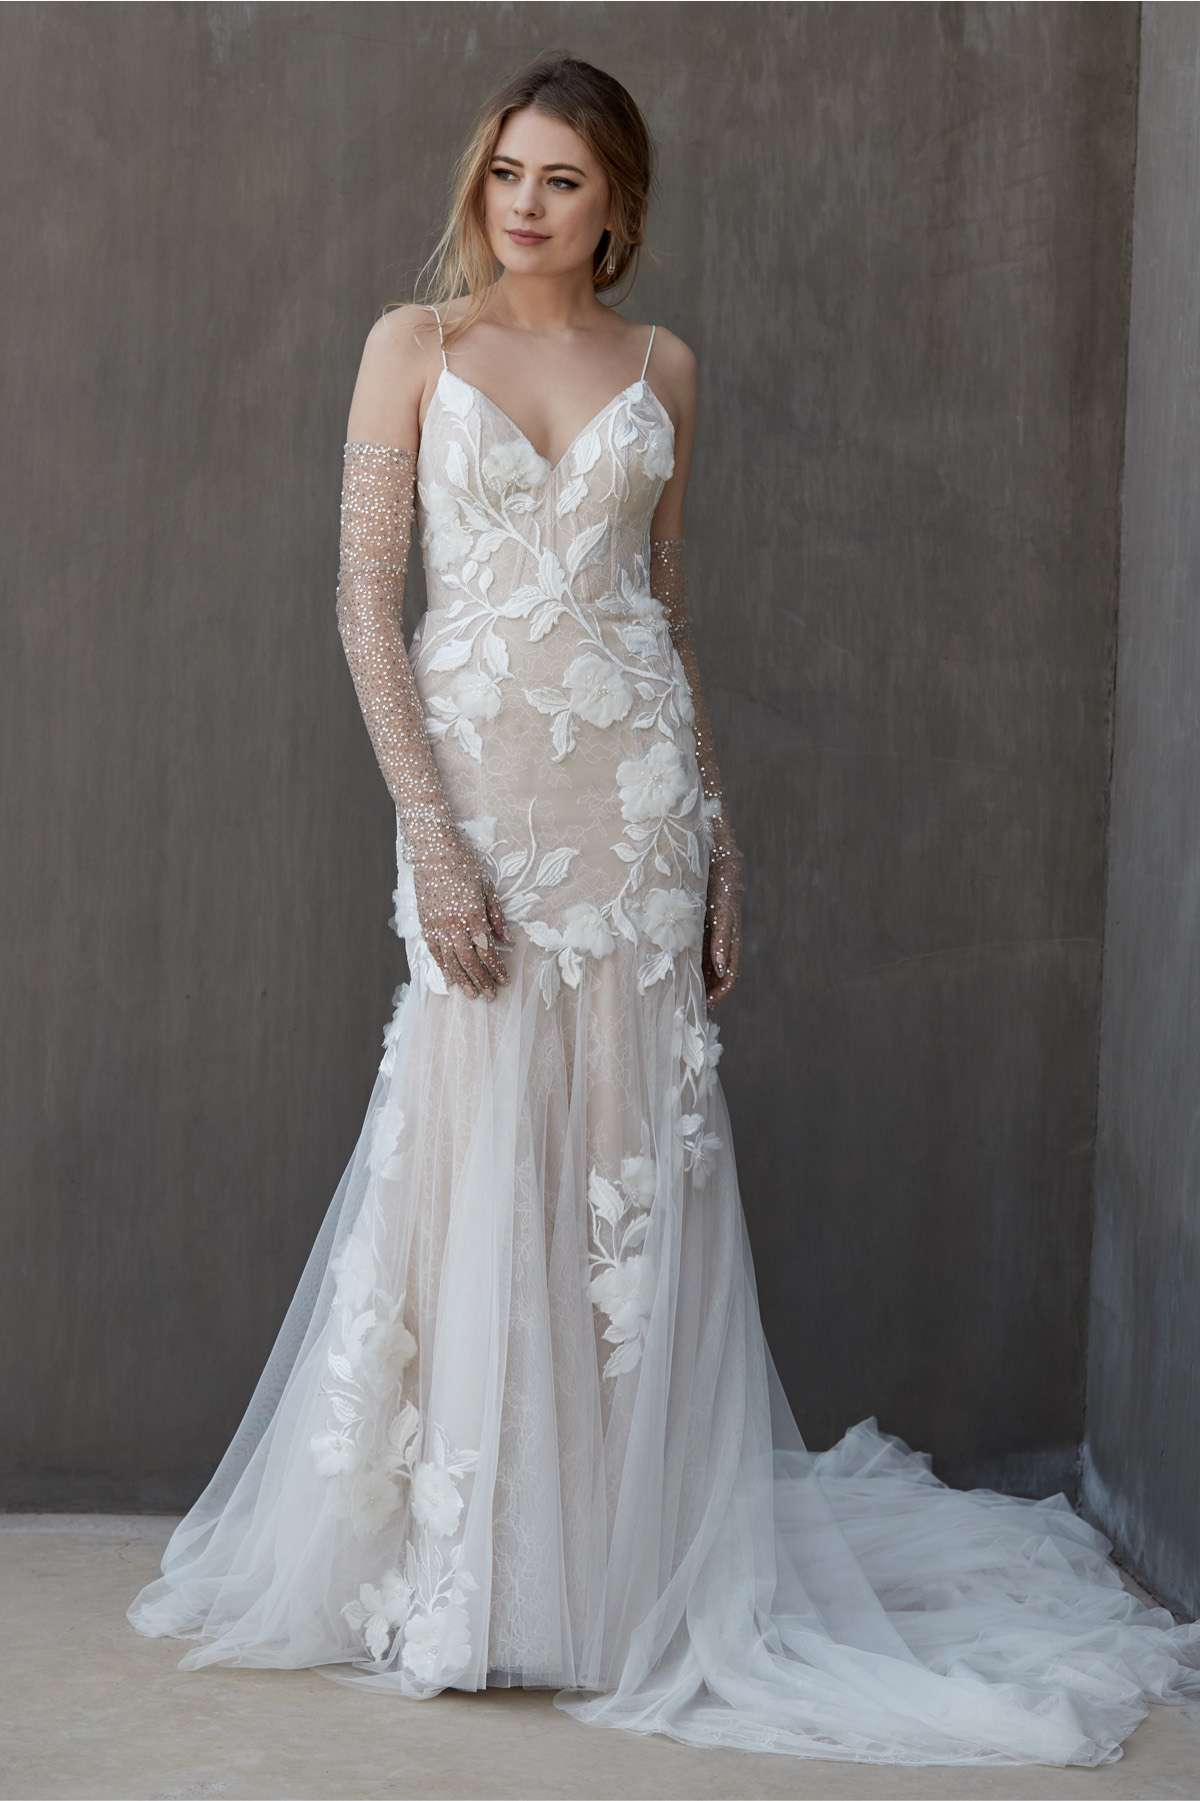 Model in spaghetti strap trumpet gown with allover floral embroidery and a tulle skirt